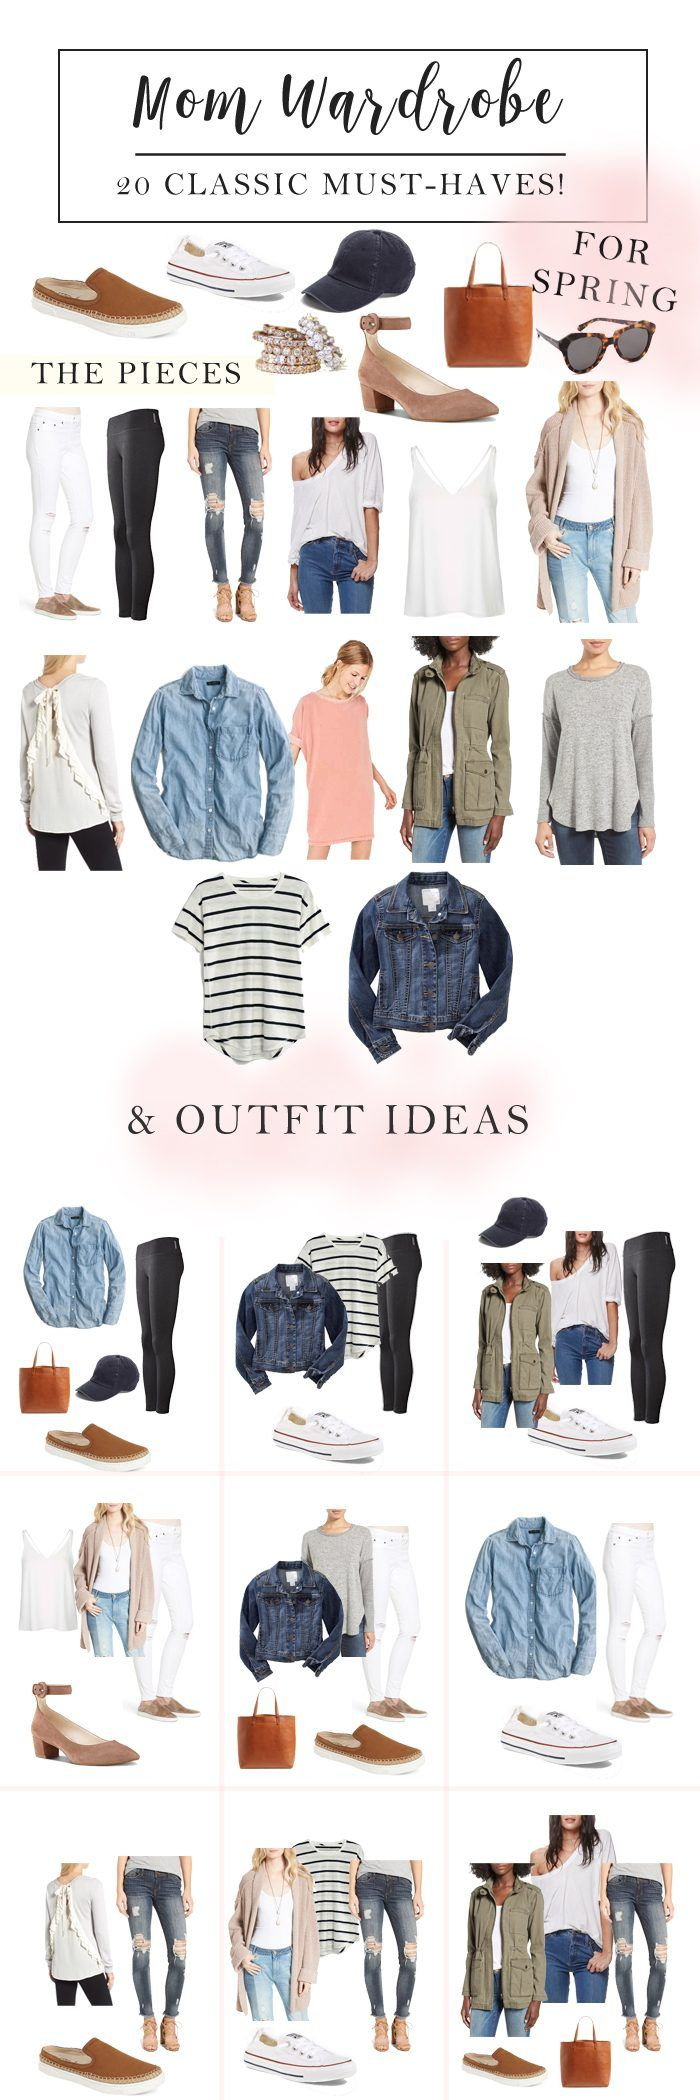 Mom Wardrobe Classic Must Haves for Spring // Mom outfit ideas for spring // Spring outfit ideas // Spring style